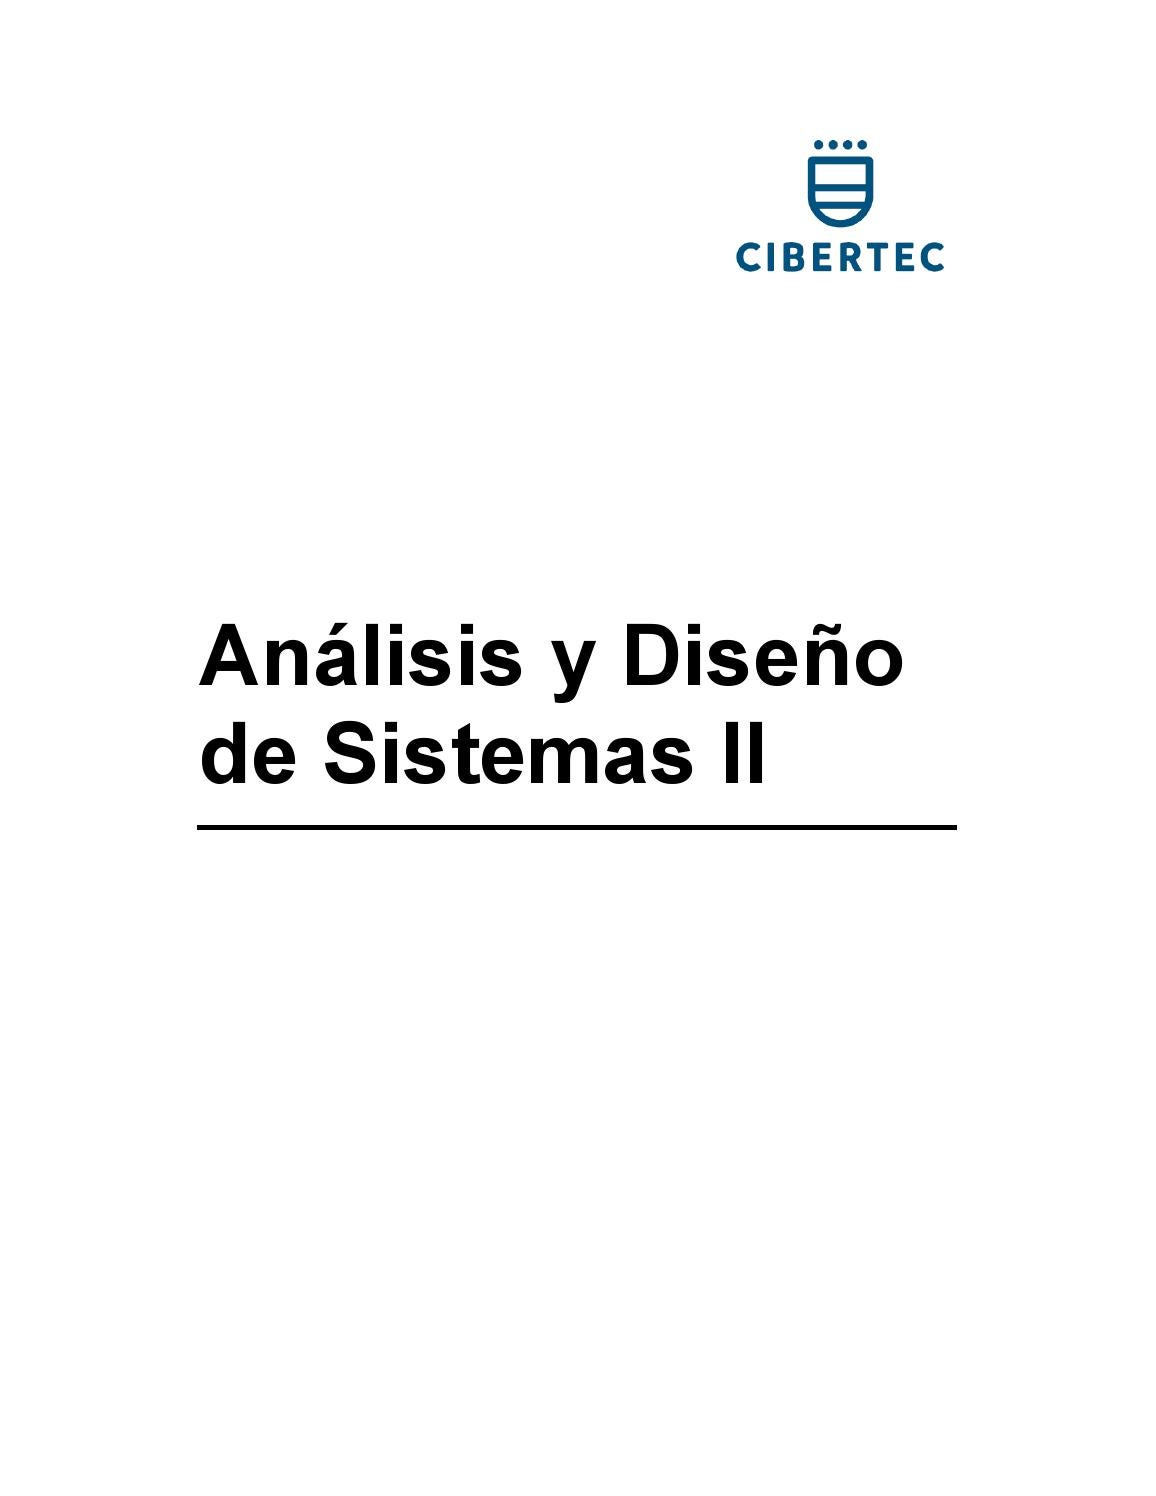 Manual de Analisis y Diseño de Sistemas || by Americo Muñoz - issuu